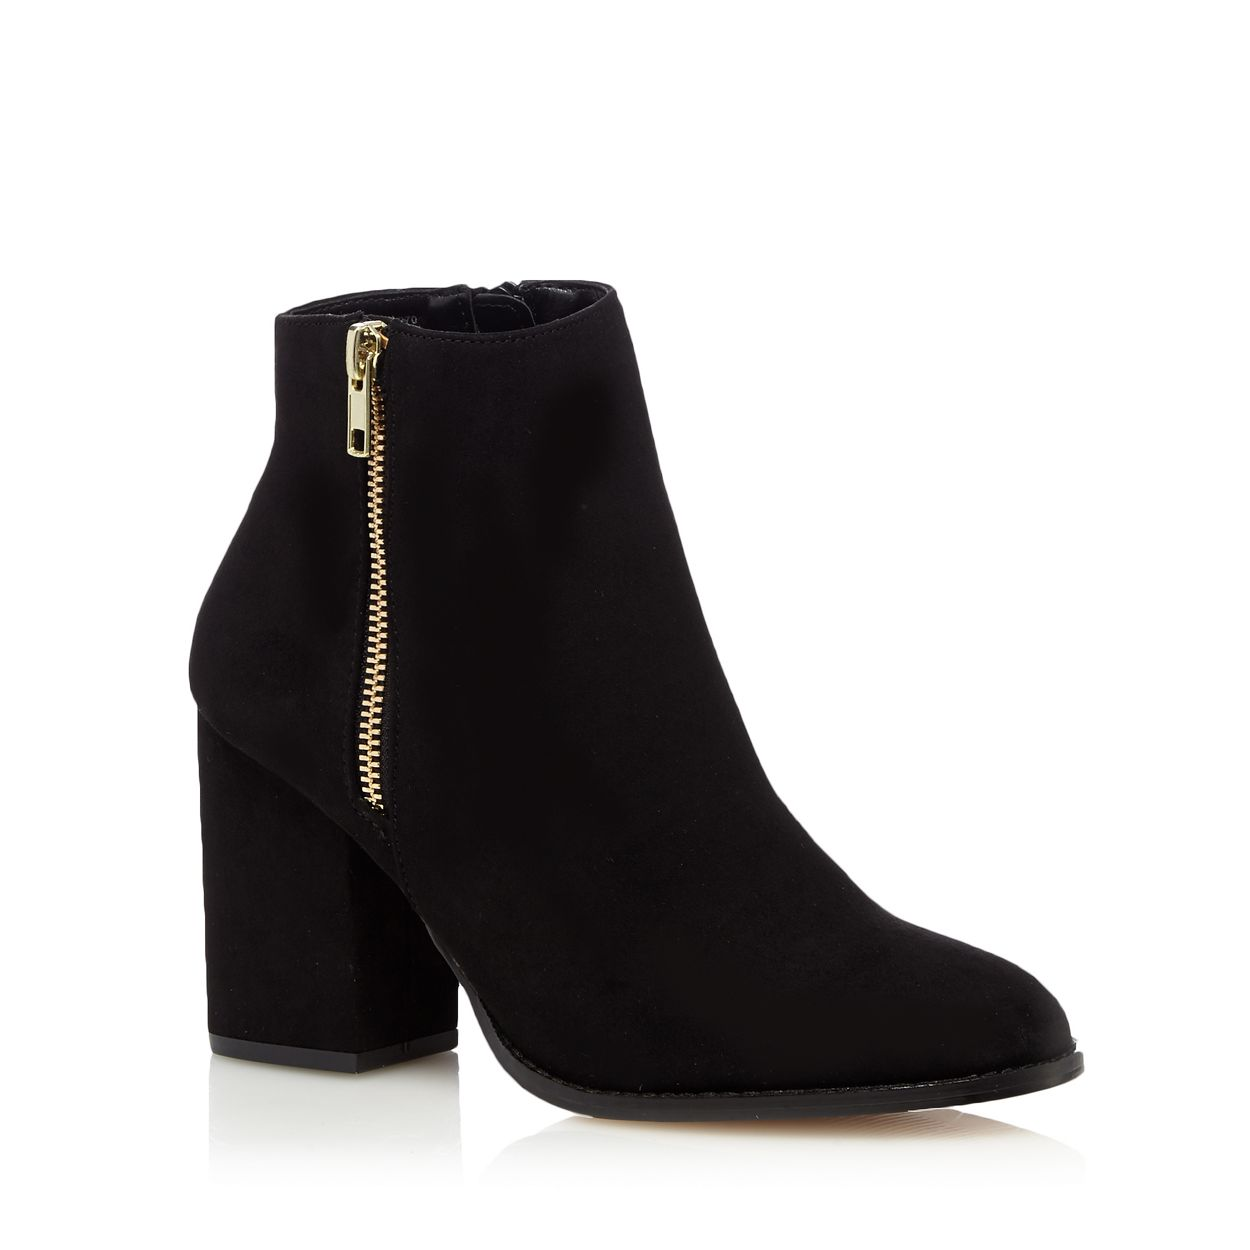 Ankle boots - Boots - Sale | Debenhams